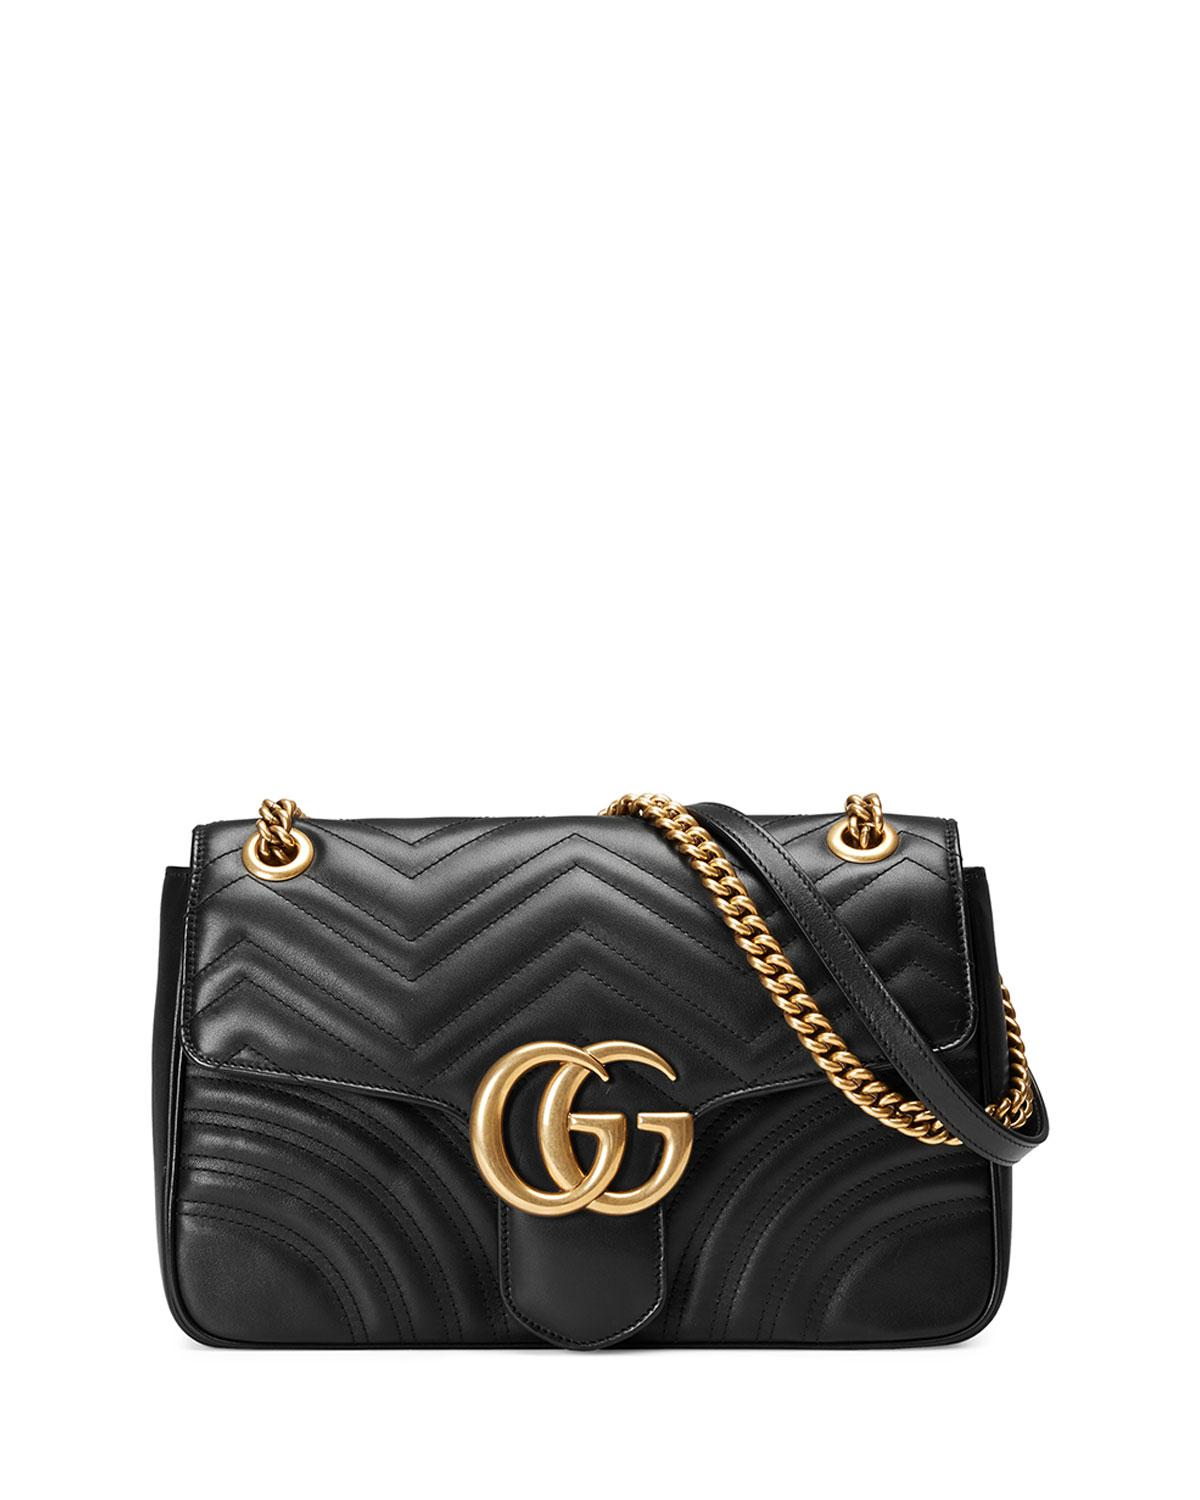 413d7cc39a7e Gucci GG Marmont Medium Matelassé Shoulder Bag in Black - Save 45 ...